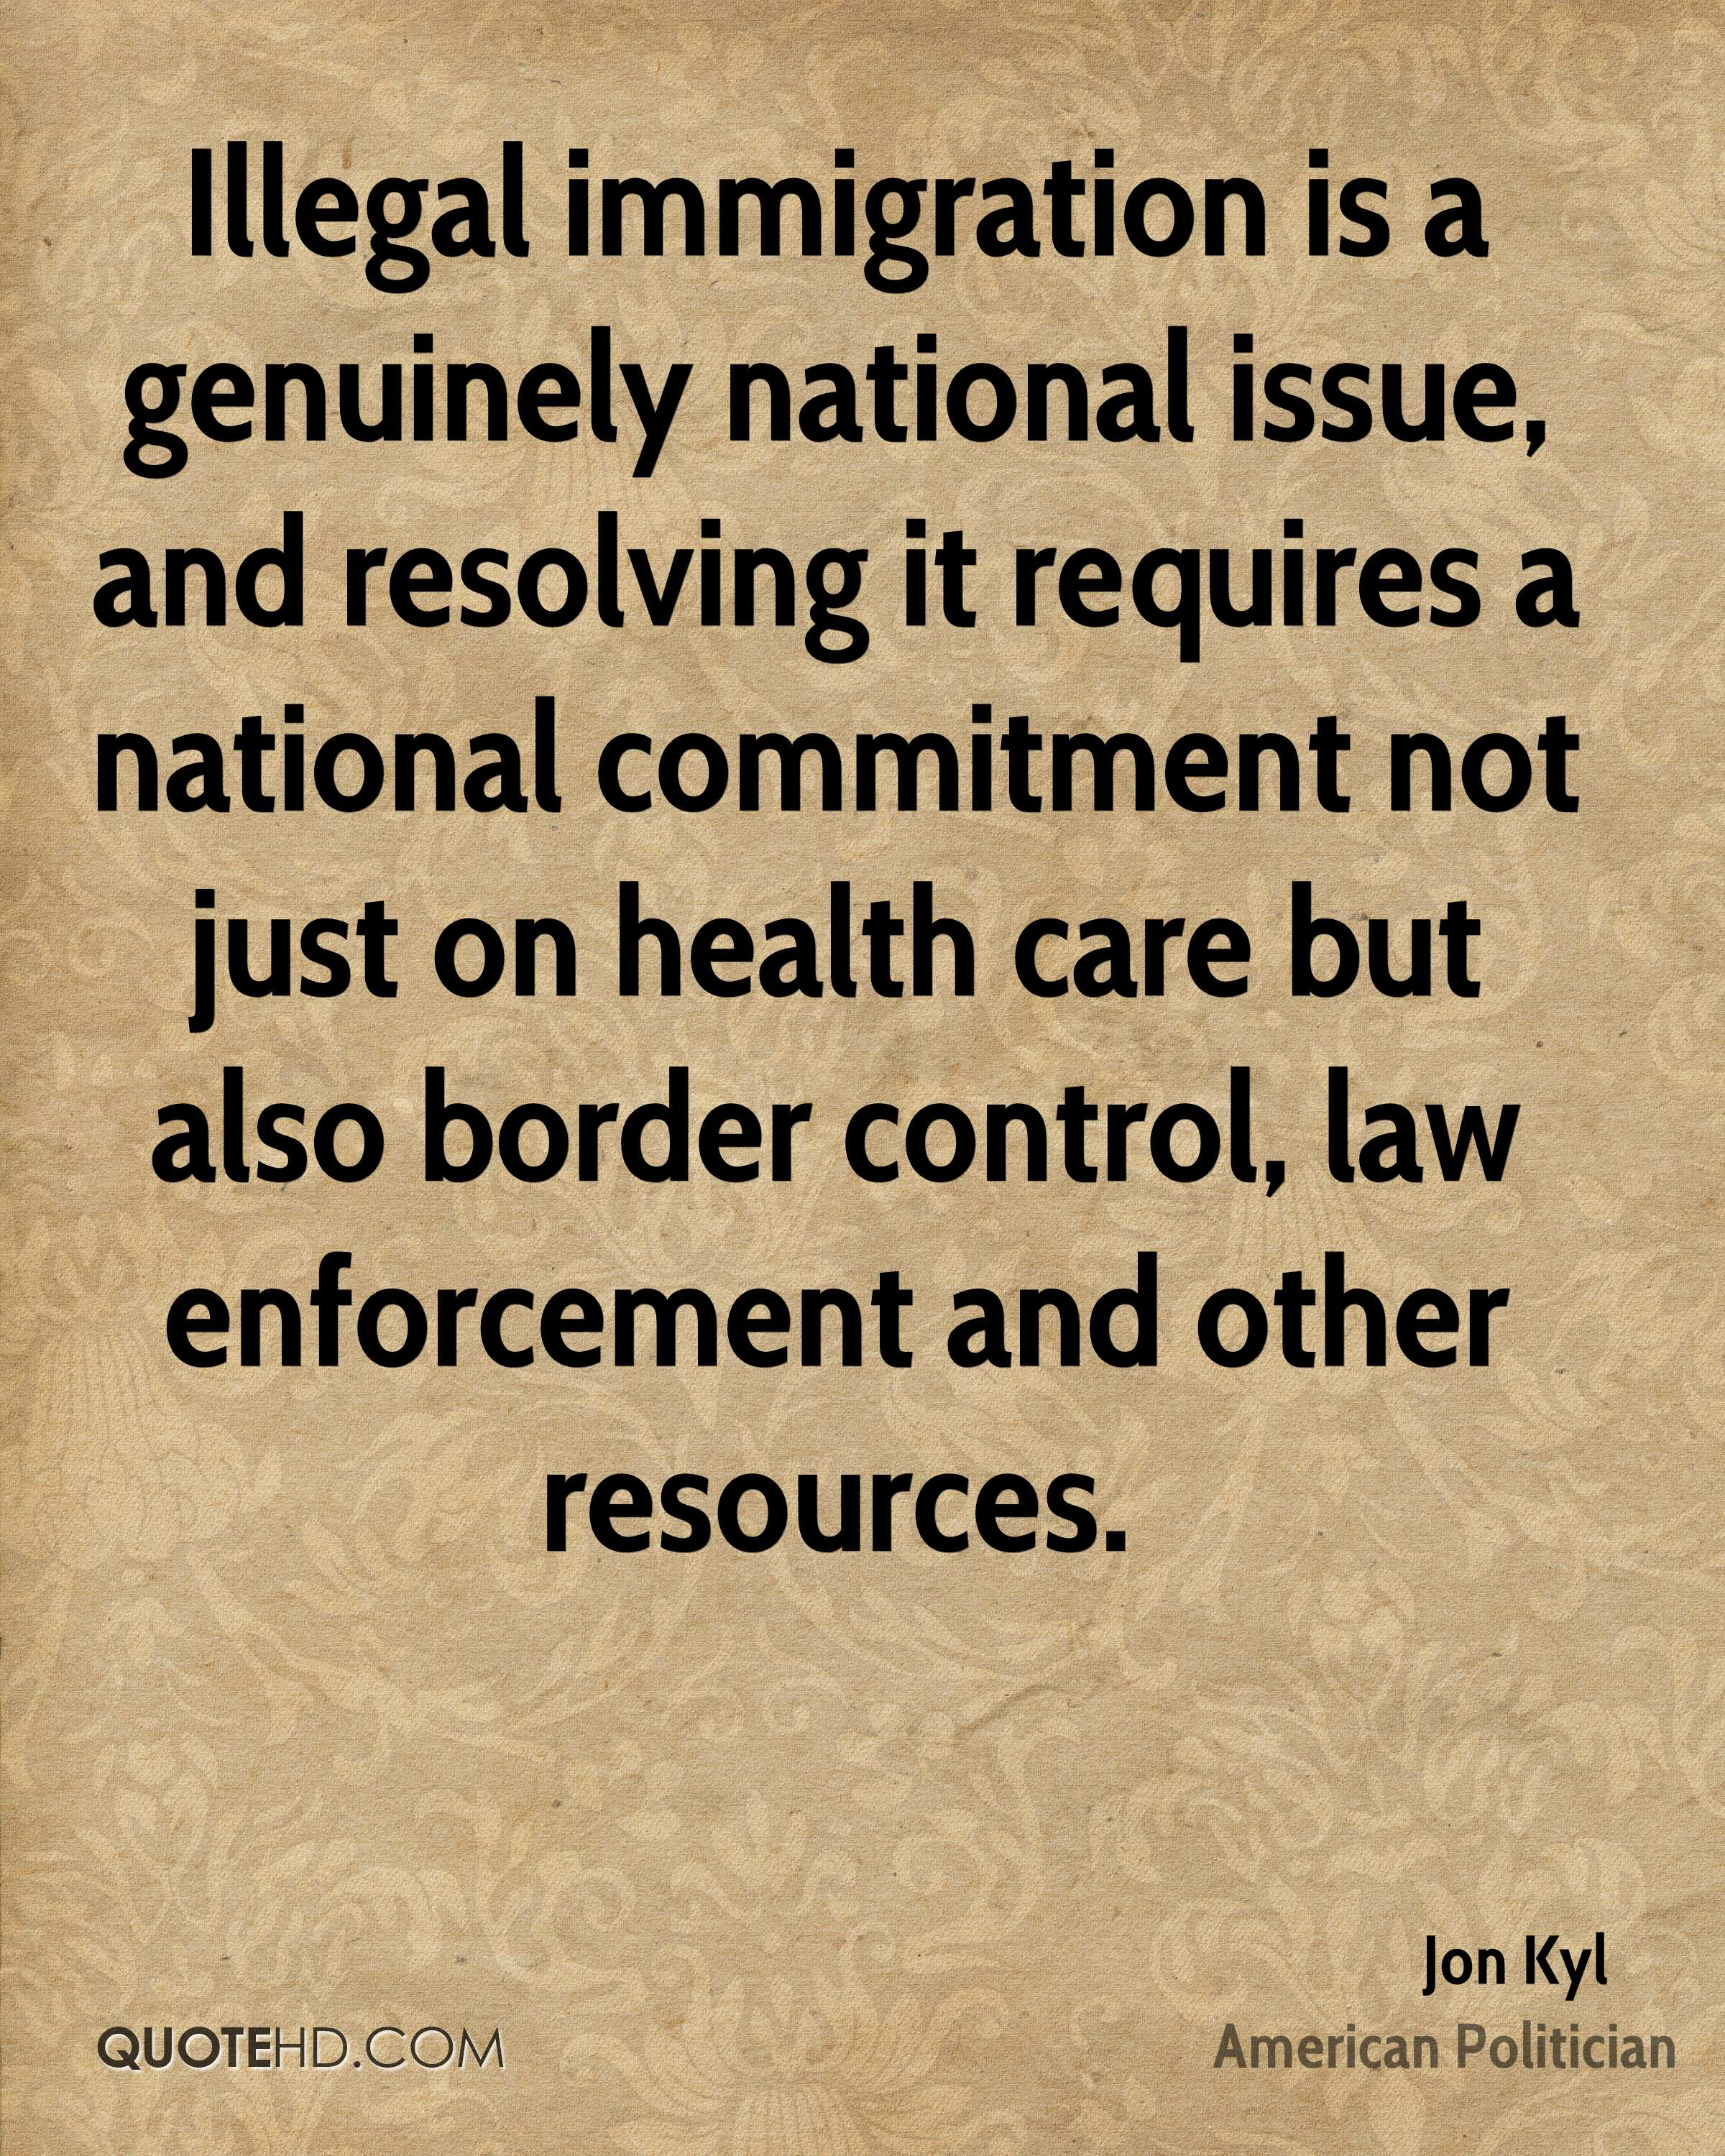 Illegal immigration is a genuinely national issue, and resolving it requires a national commitment not just on health care but also border control, law enforcement and other resources.